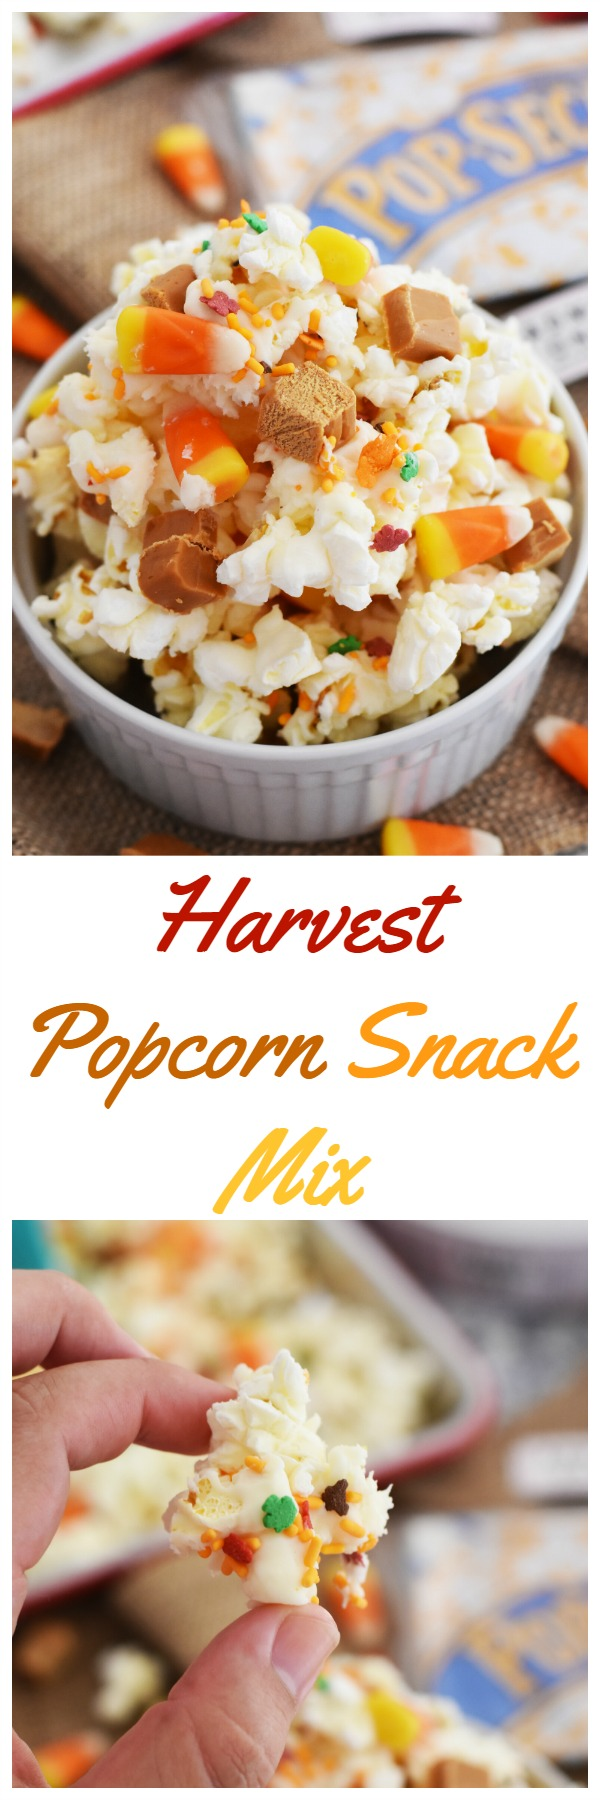 Harvest Popcorn Snack Mix- A sweet and savory concoction that is sure to satisfy your sweet tooth. This is a perfect fall party mix to enjoy with a movie.